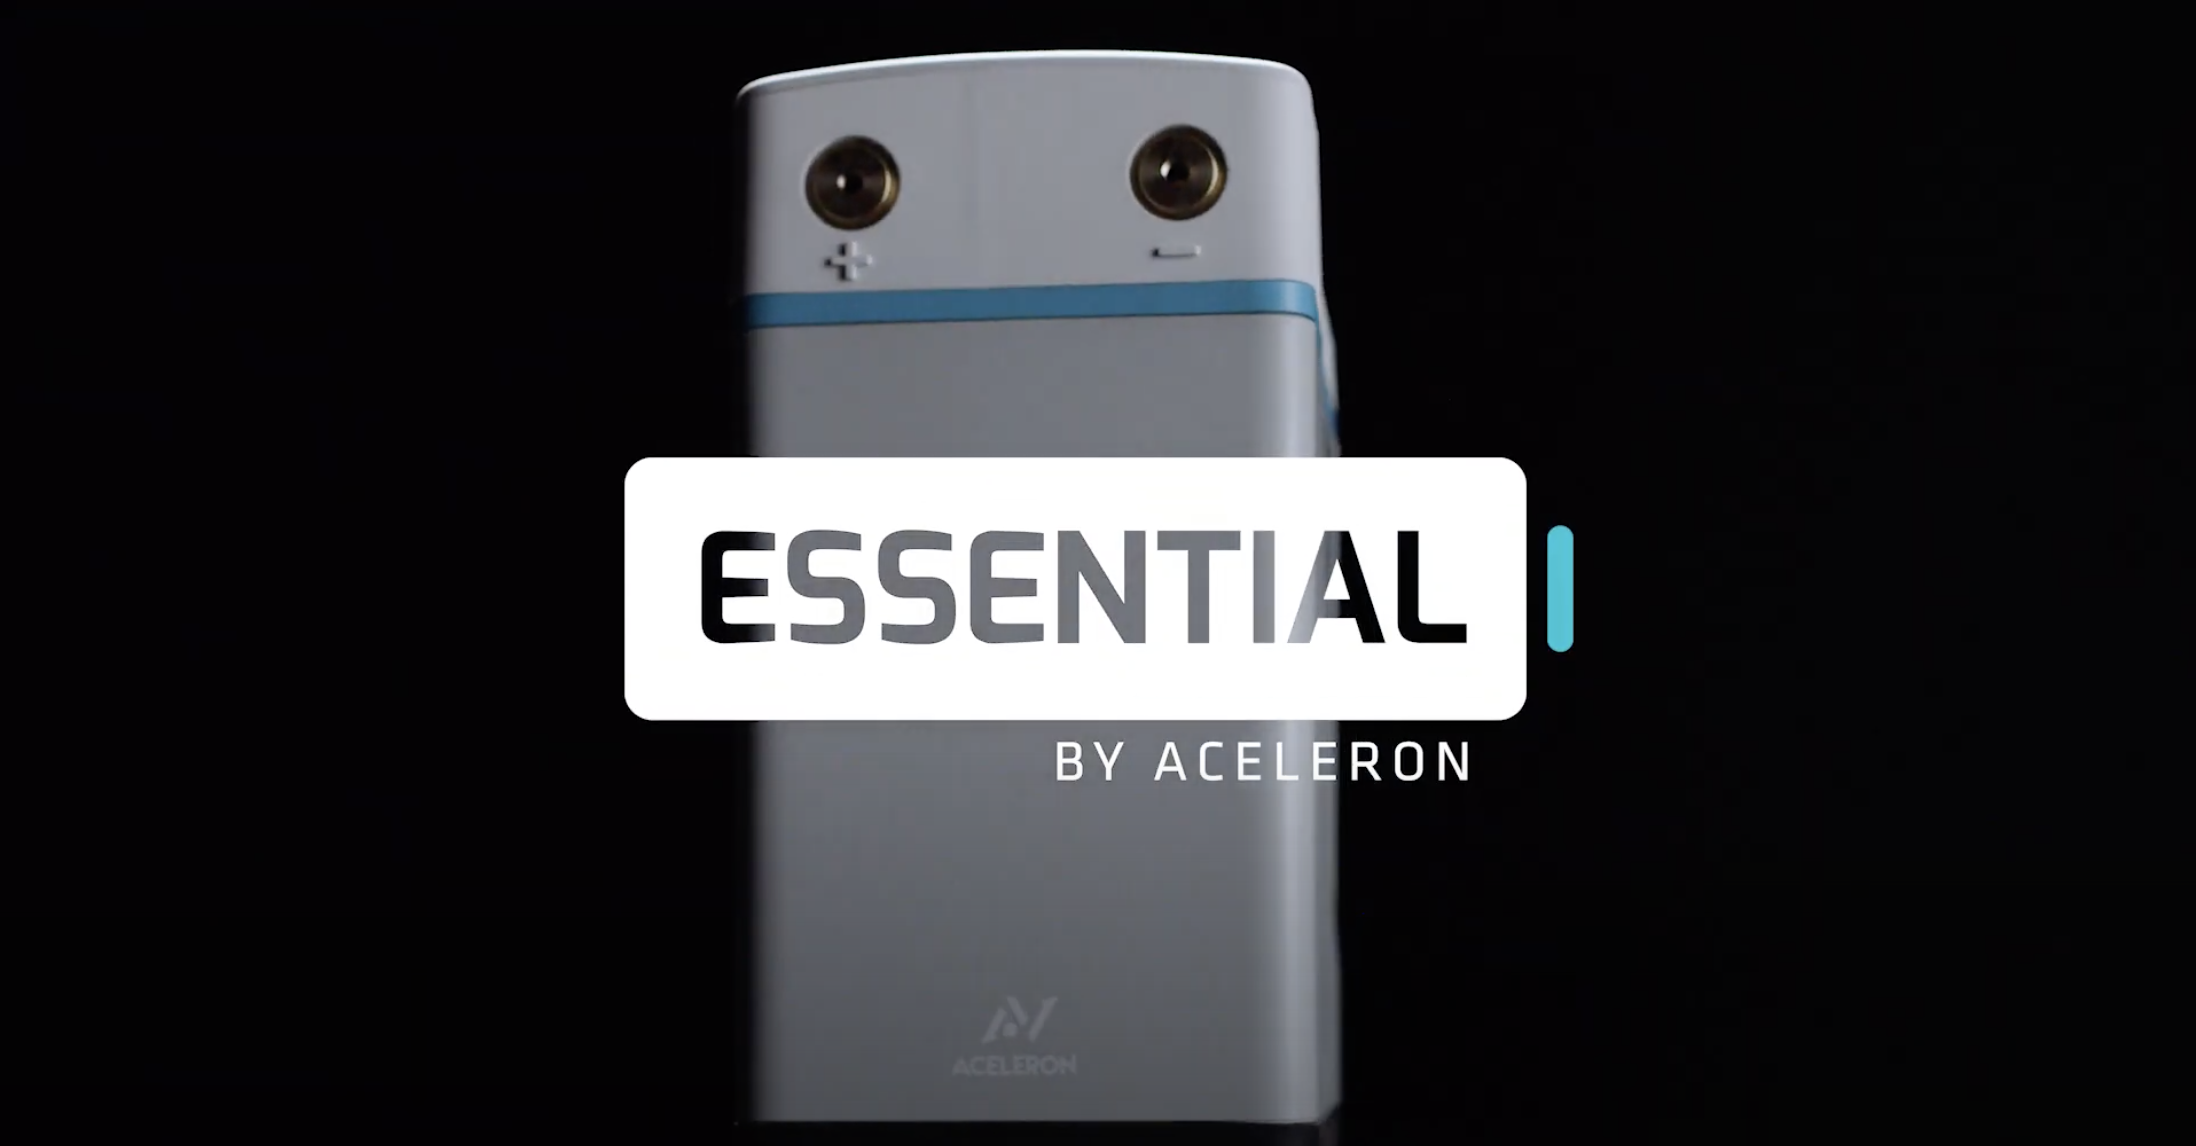 ESSENTIAL: Next-Gen Advanced Energy Storage that is Scalable, Serviceable and Upgradeable